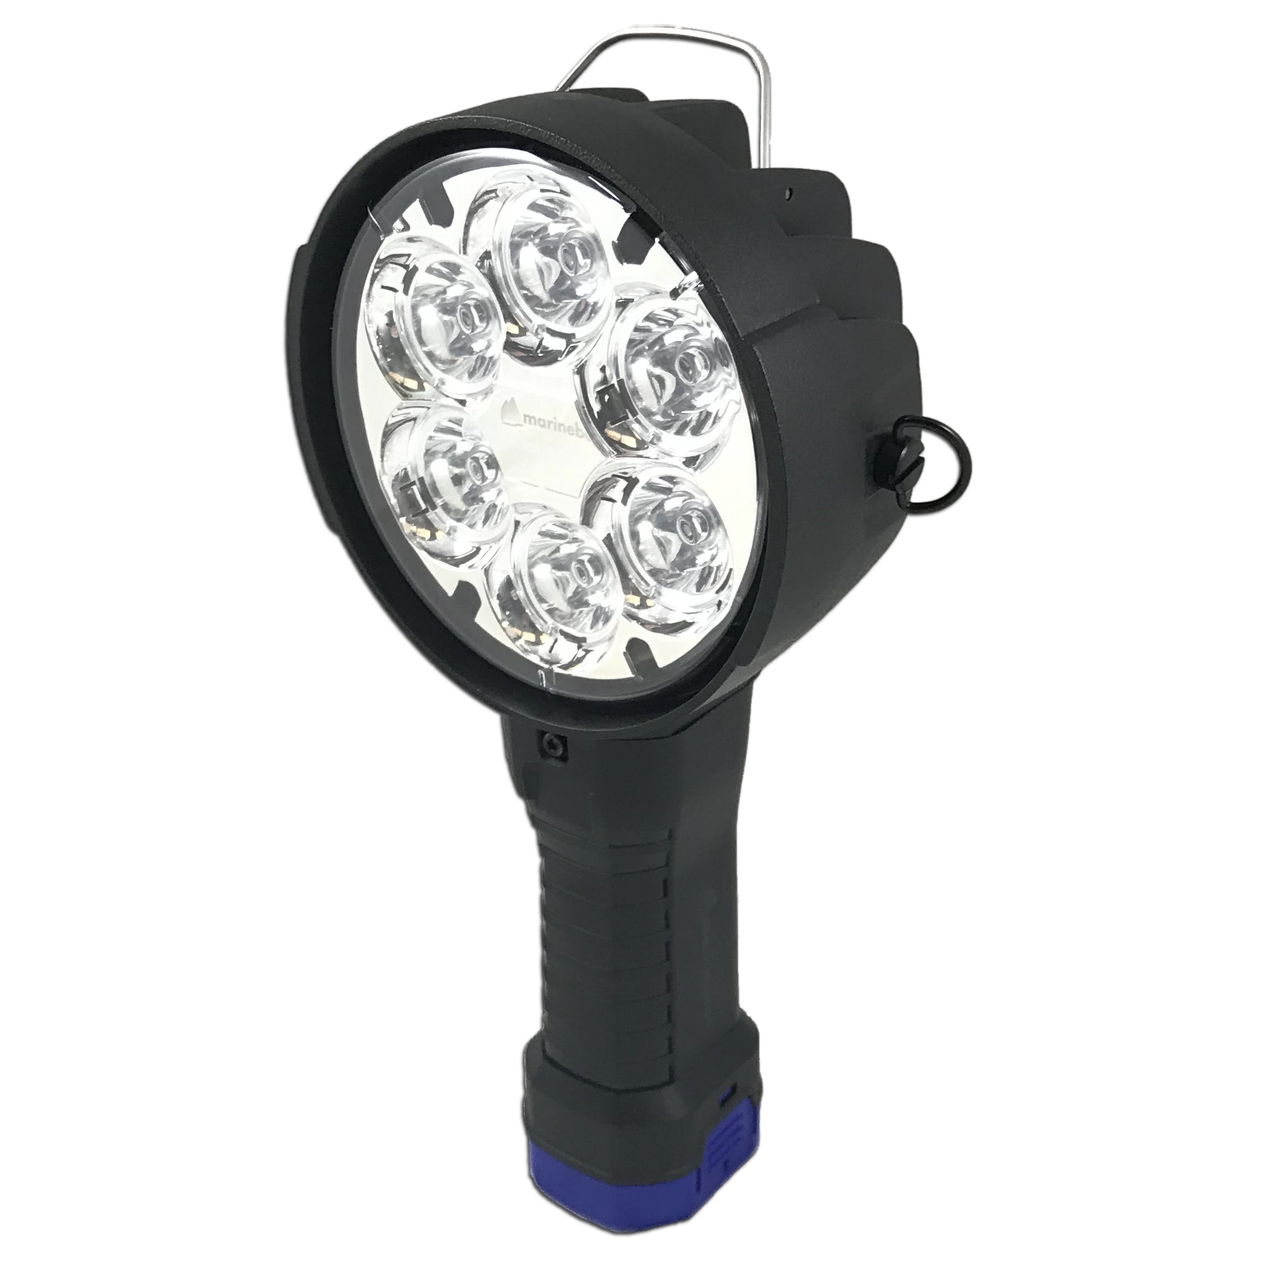 Marinebeam Handheld Rechargeable LED Spotlight